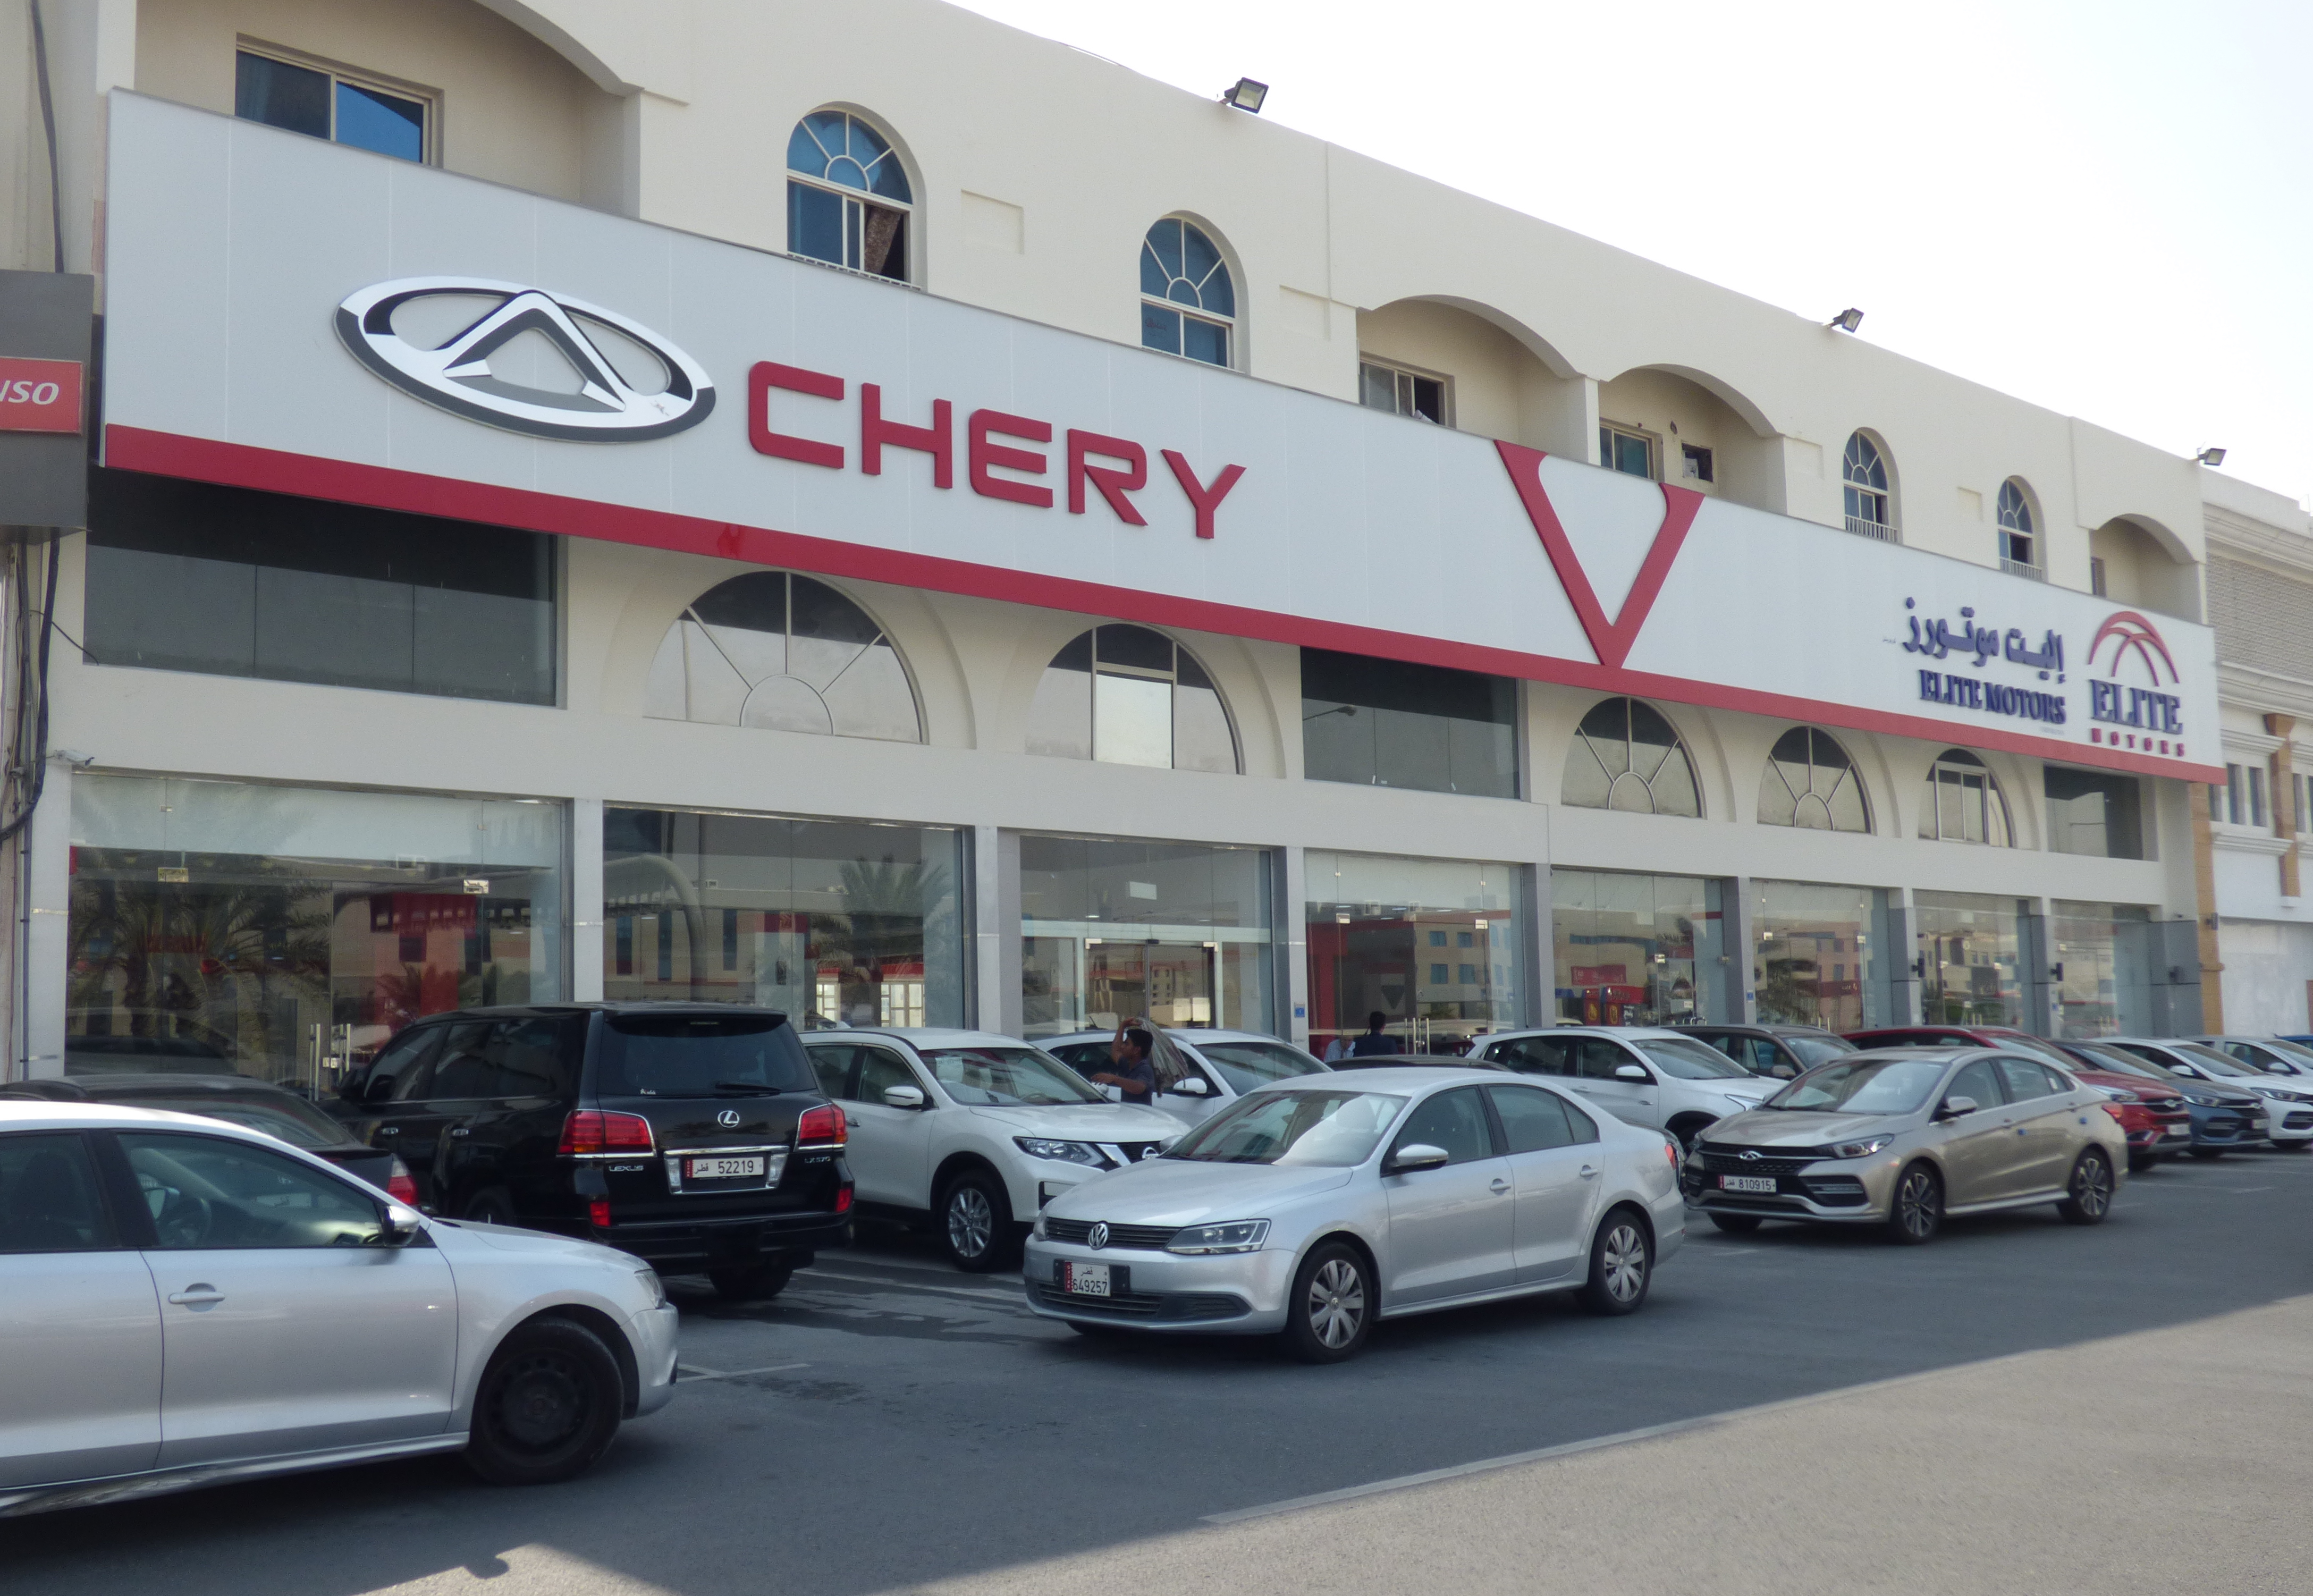 Elite Motors opens a new showroom selling Chery cars